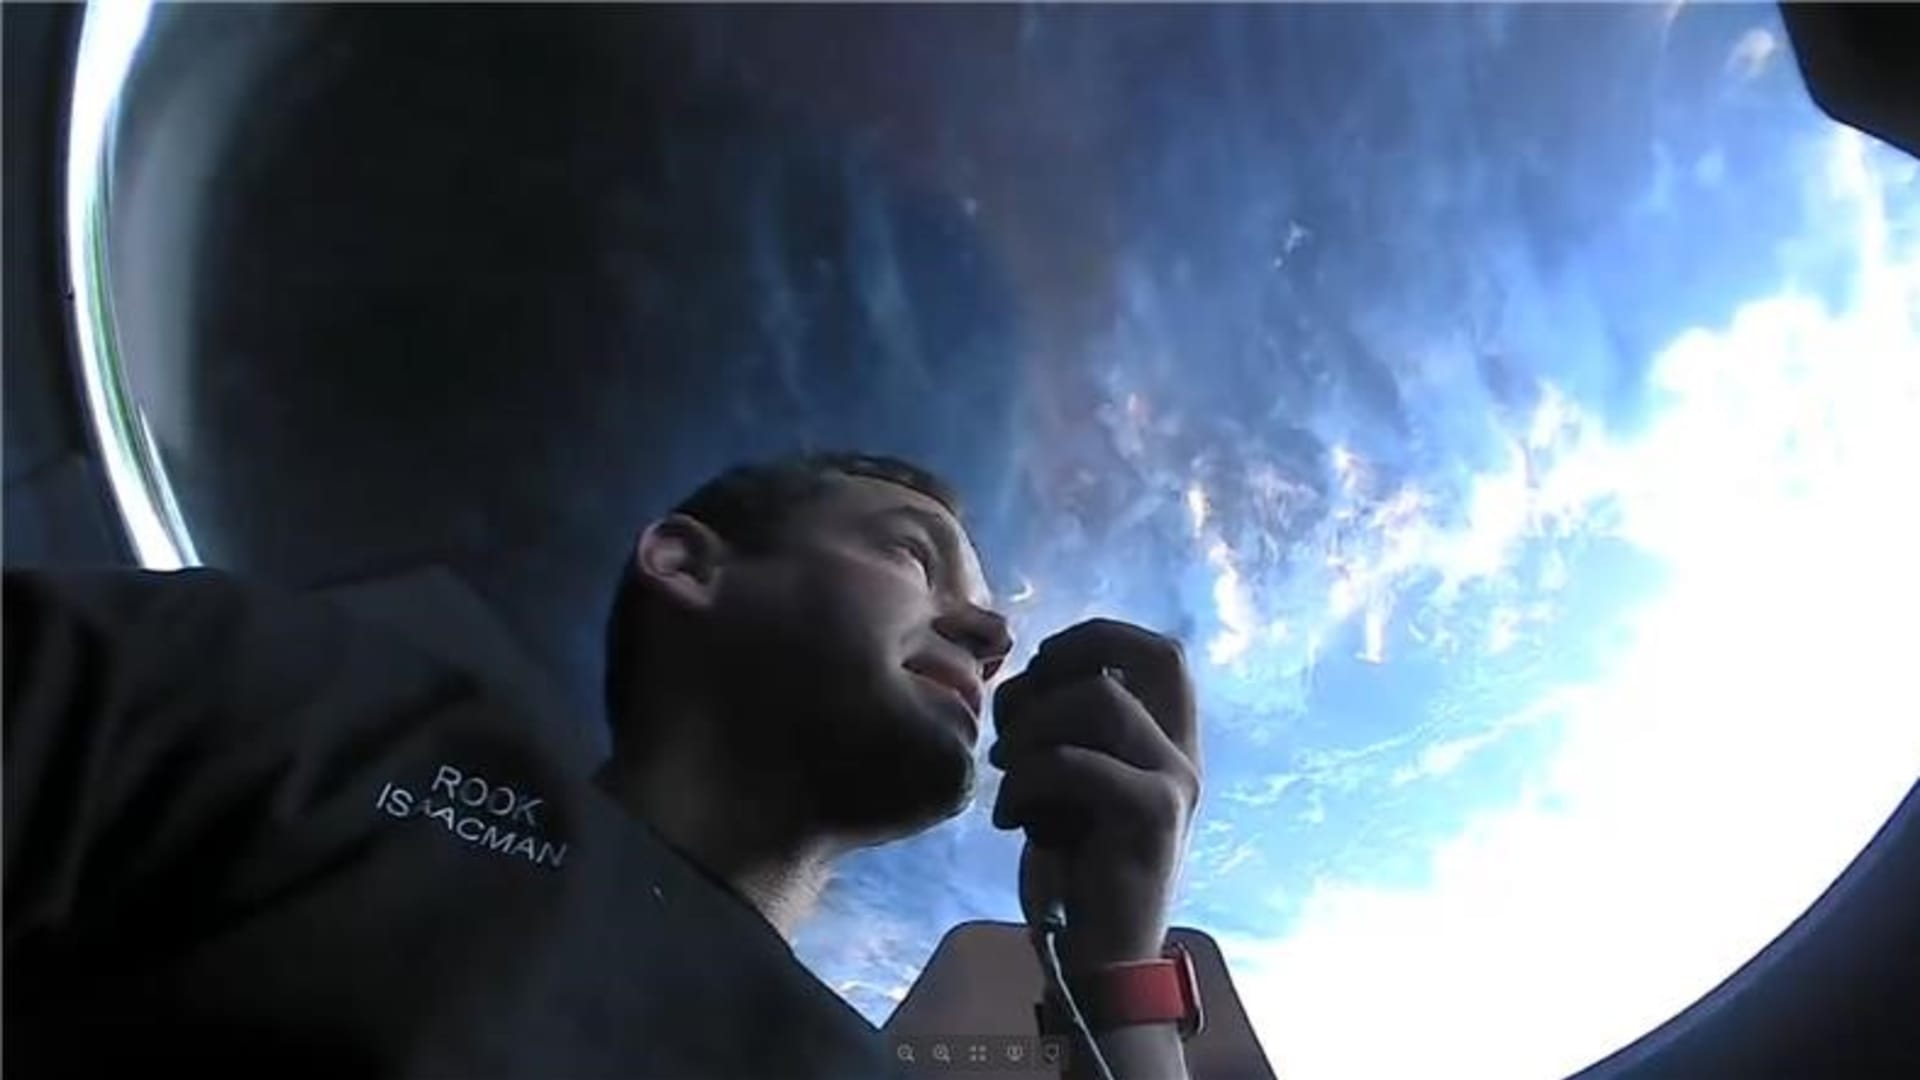 Spacecraft commander Jared Isaacman speaks into a microphone as he peers out the cupola window.